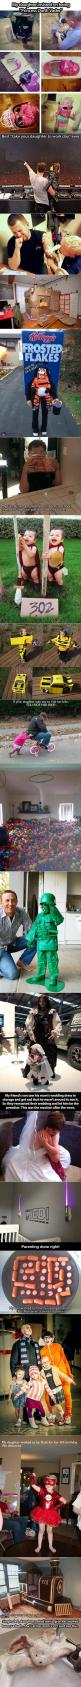 Here are some awesome and geeky parents who are doing it right.: Parenting You Re, Giggle, Awesome Parenting, Parenting Done Right, Awesome Parents, Parenting Wins, Star Wars, Geeky Parents